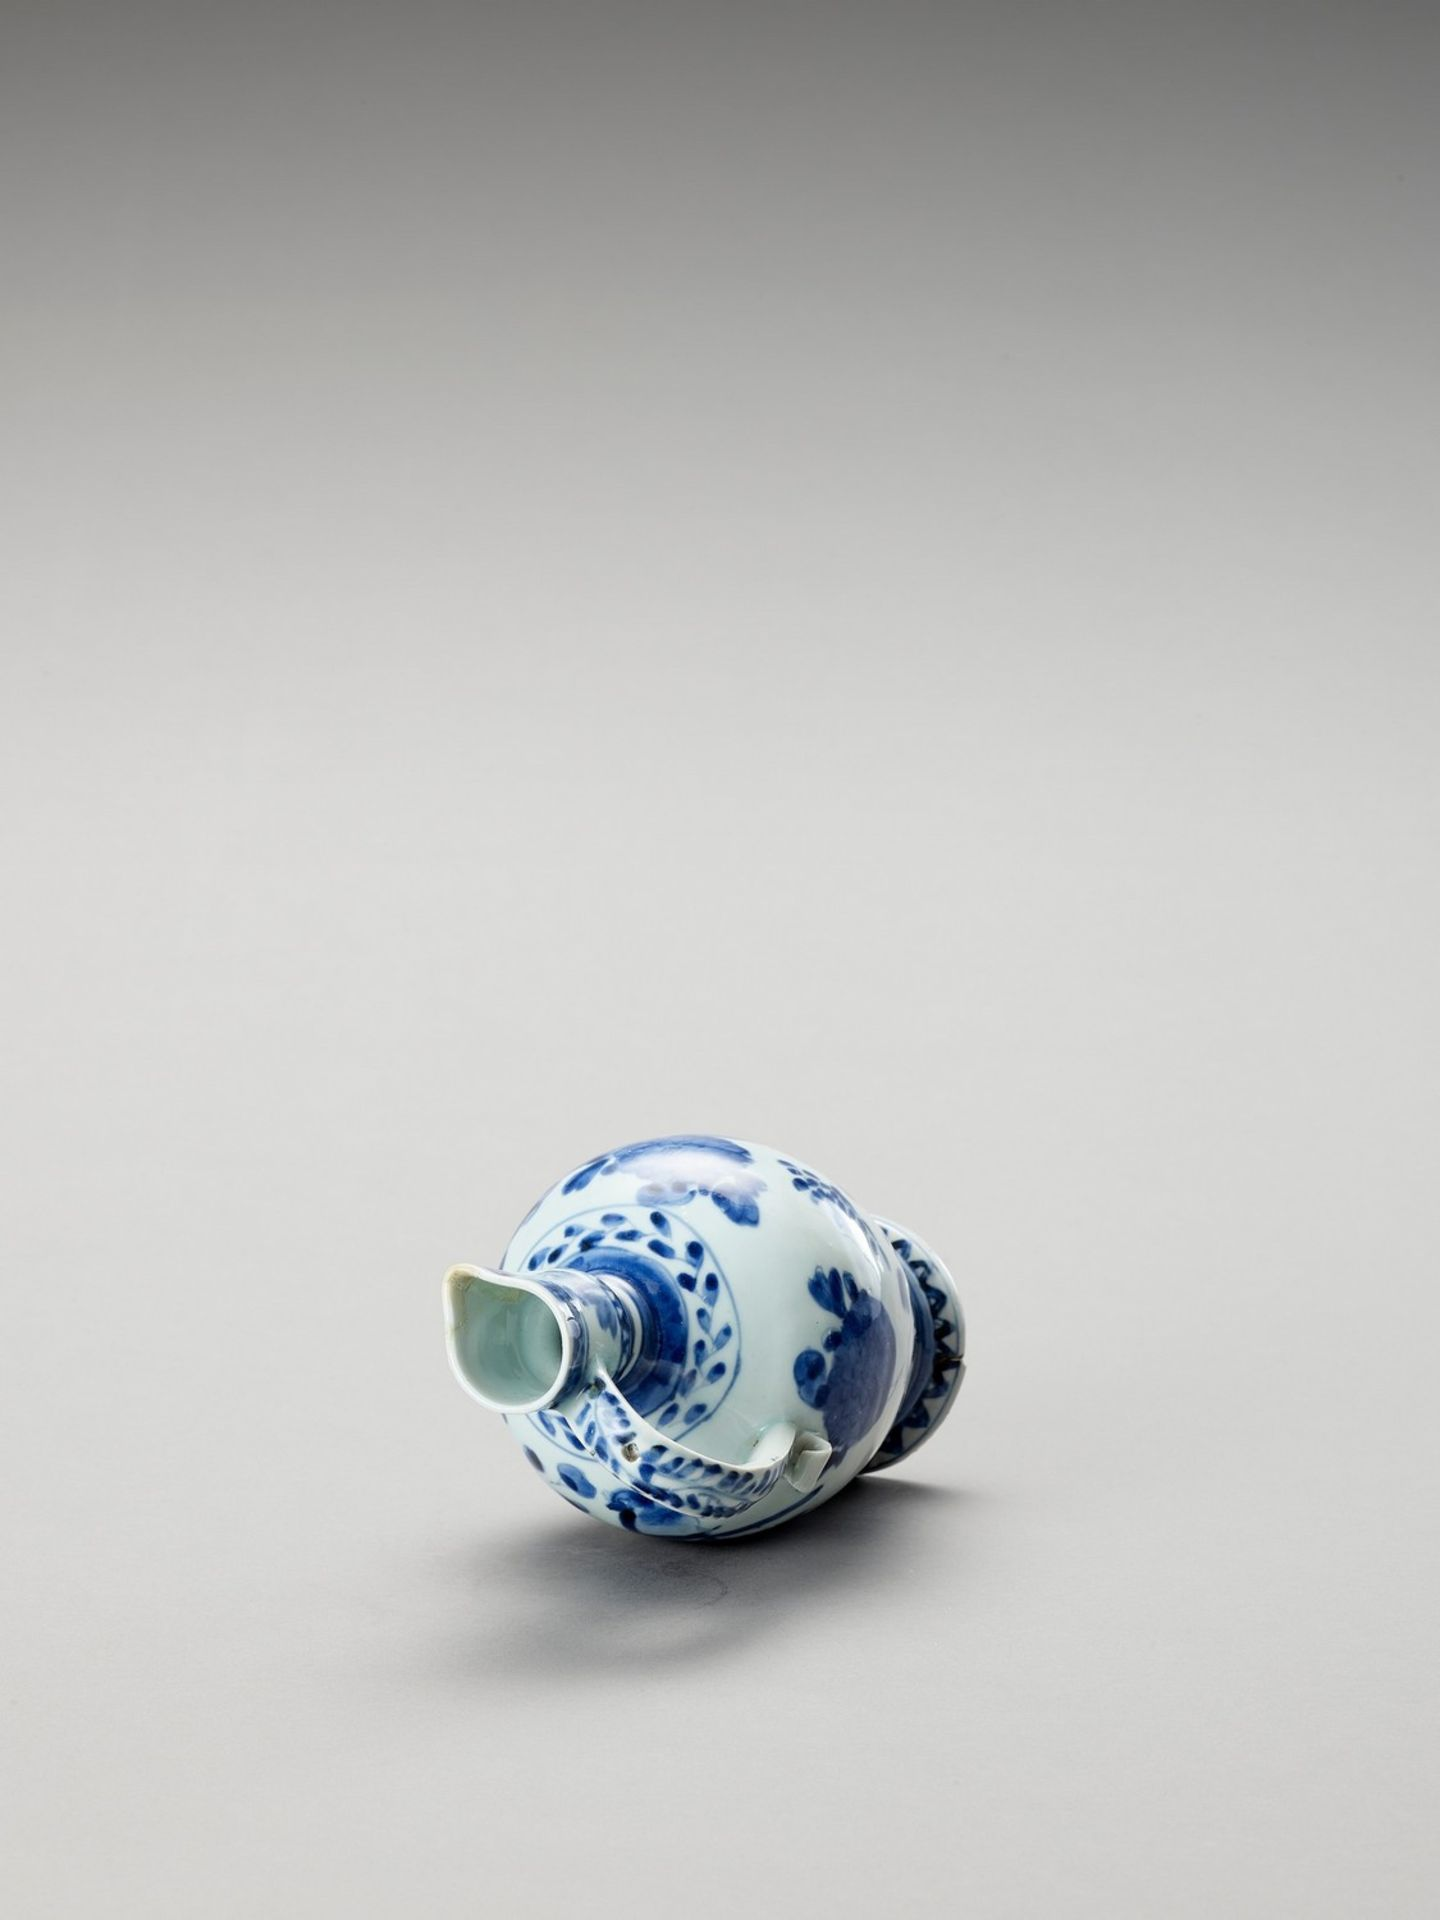 A BLUE AND WHITE PORCELAIN JUG - Image 6 of 7